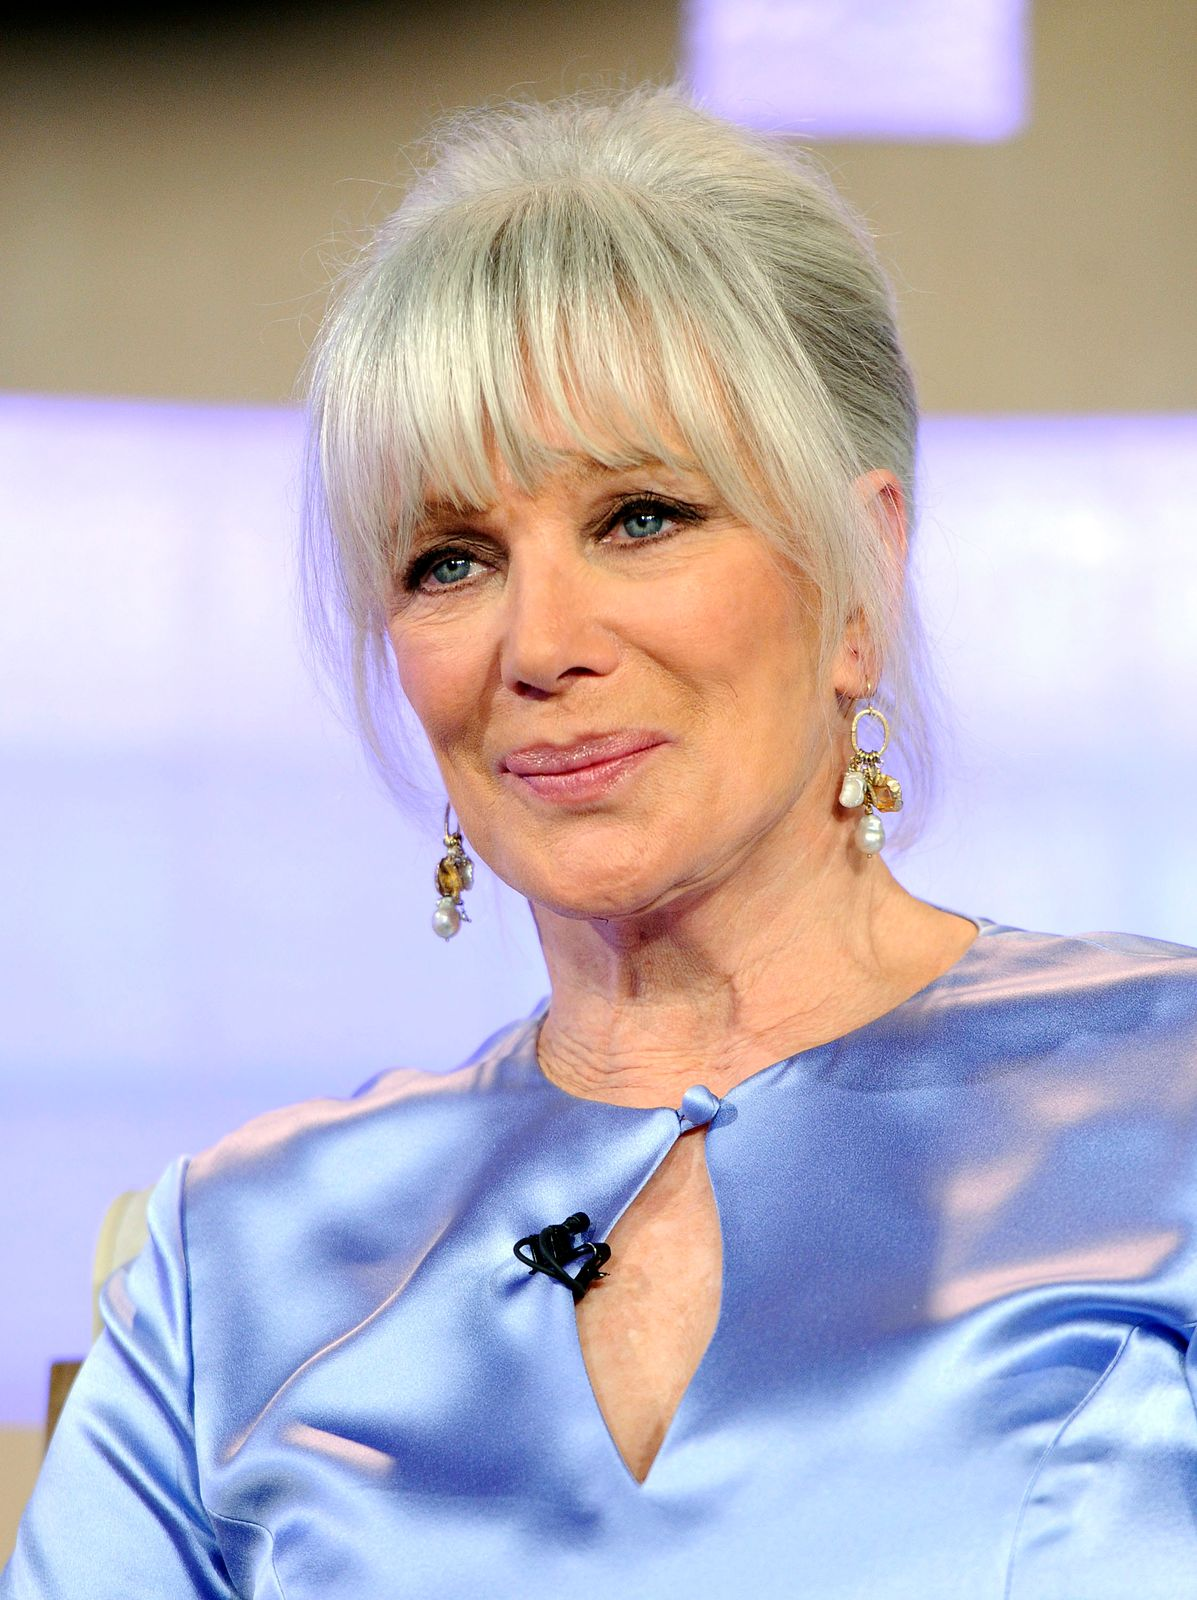 """Linda Evans on NBC News' """"Today"""" show. 